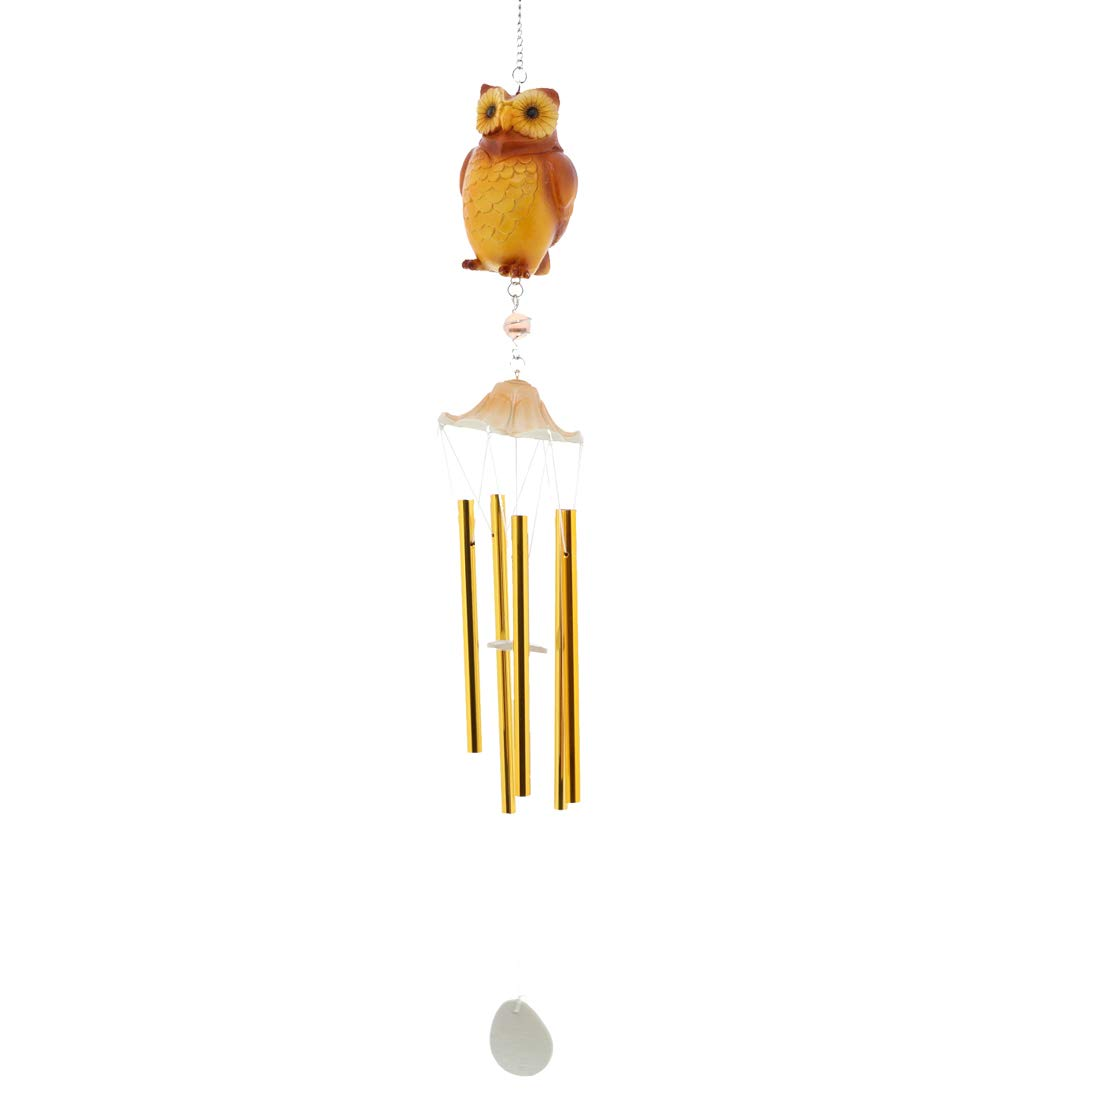 SandT Collection Patio, Balcony, Garden, Great Gift, Brown Owl Resin Wind Chime - Brown Owl